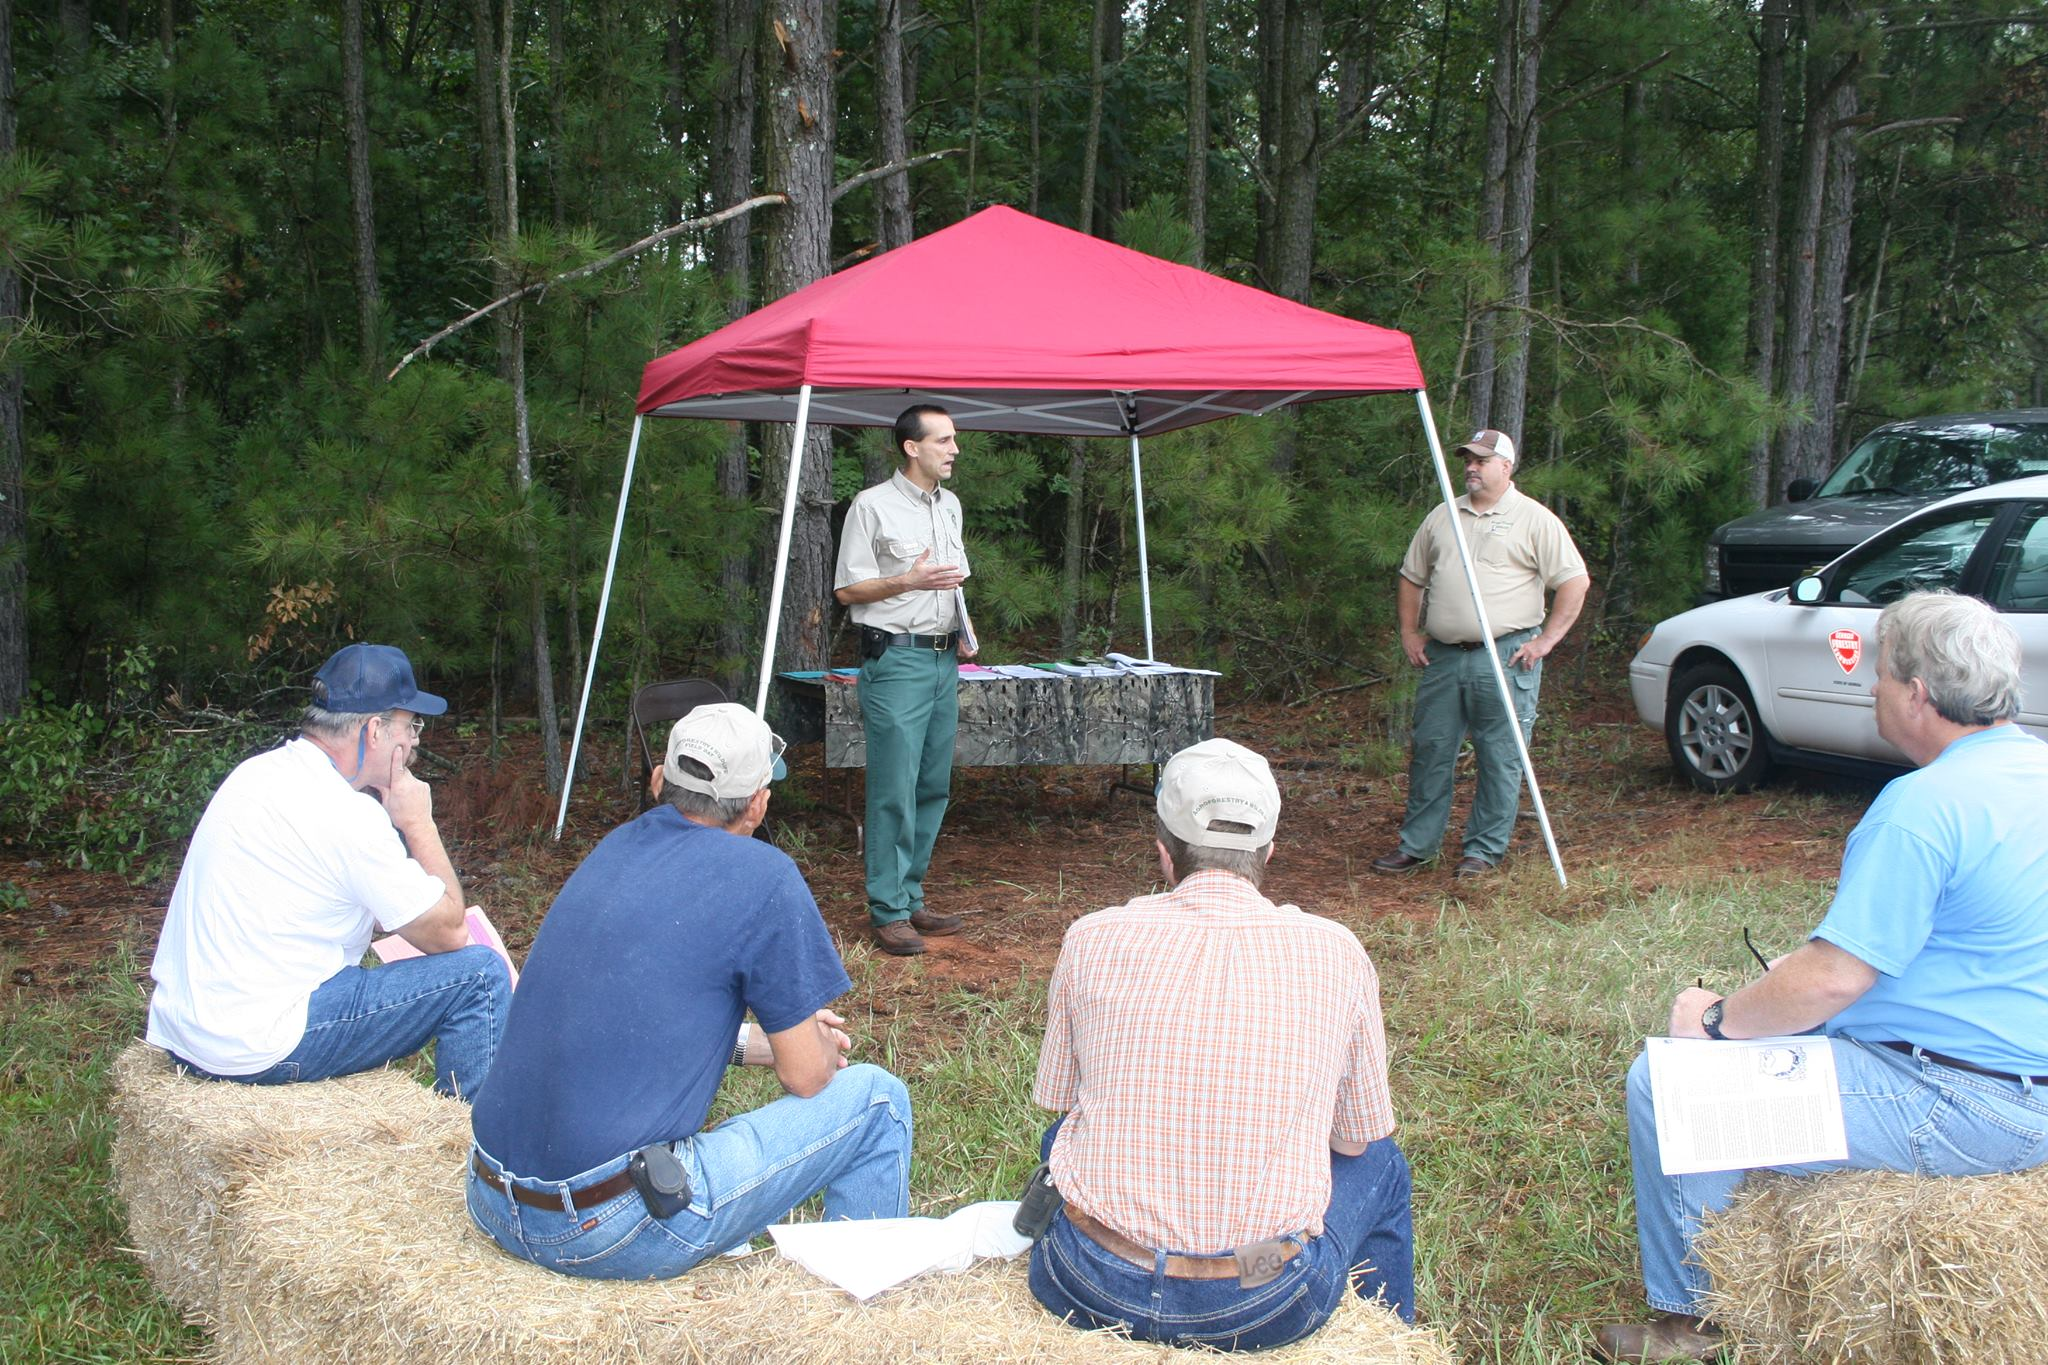 Experts from across the state will present the latest research on 28 topics at the field day.